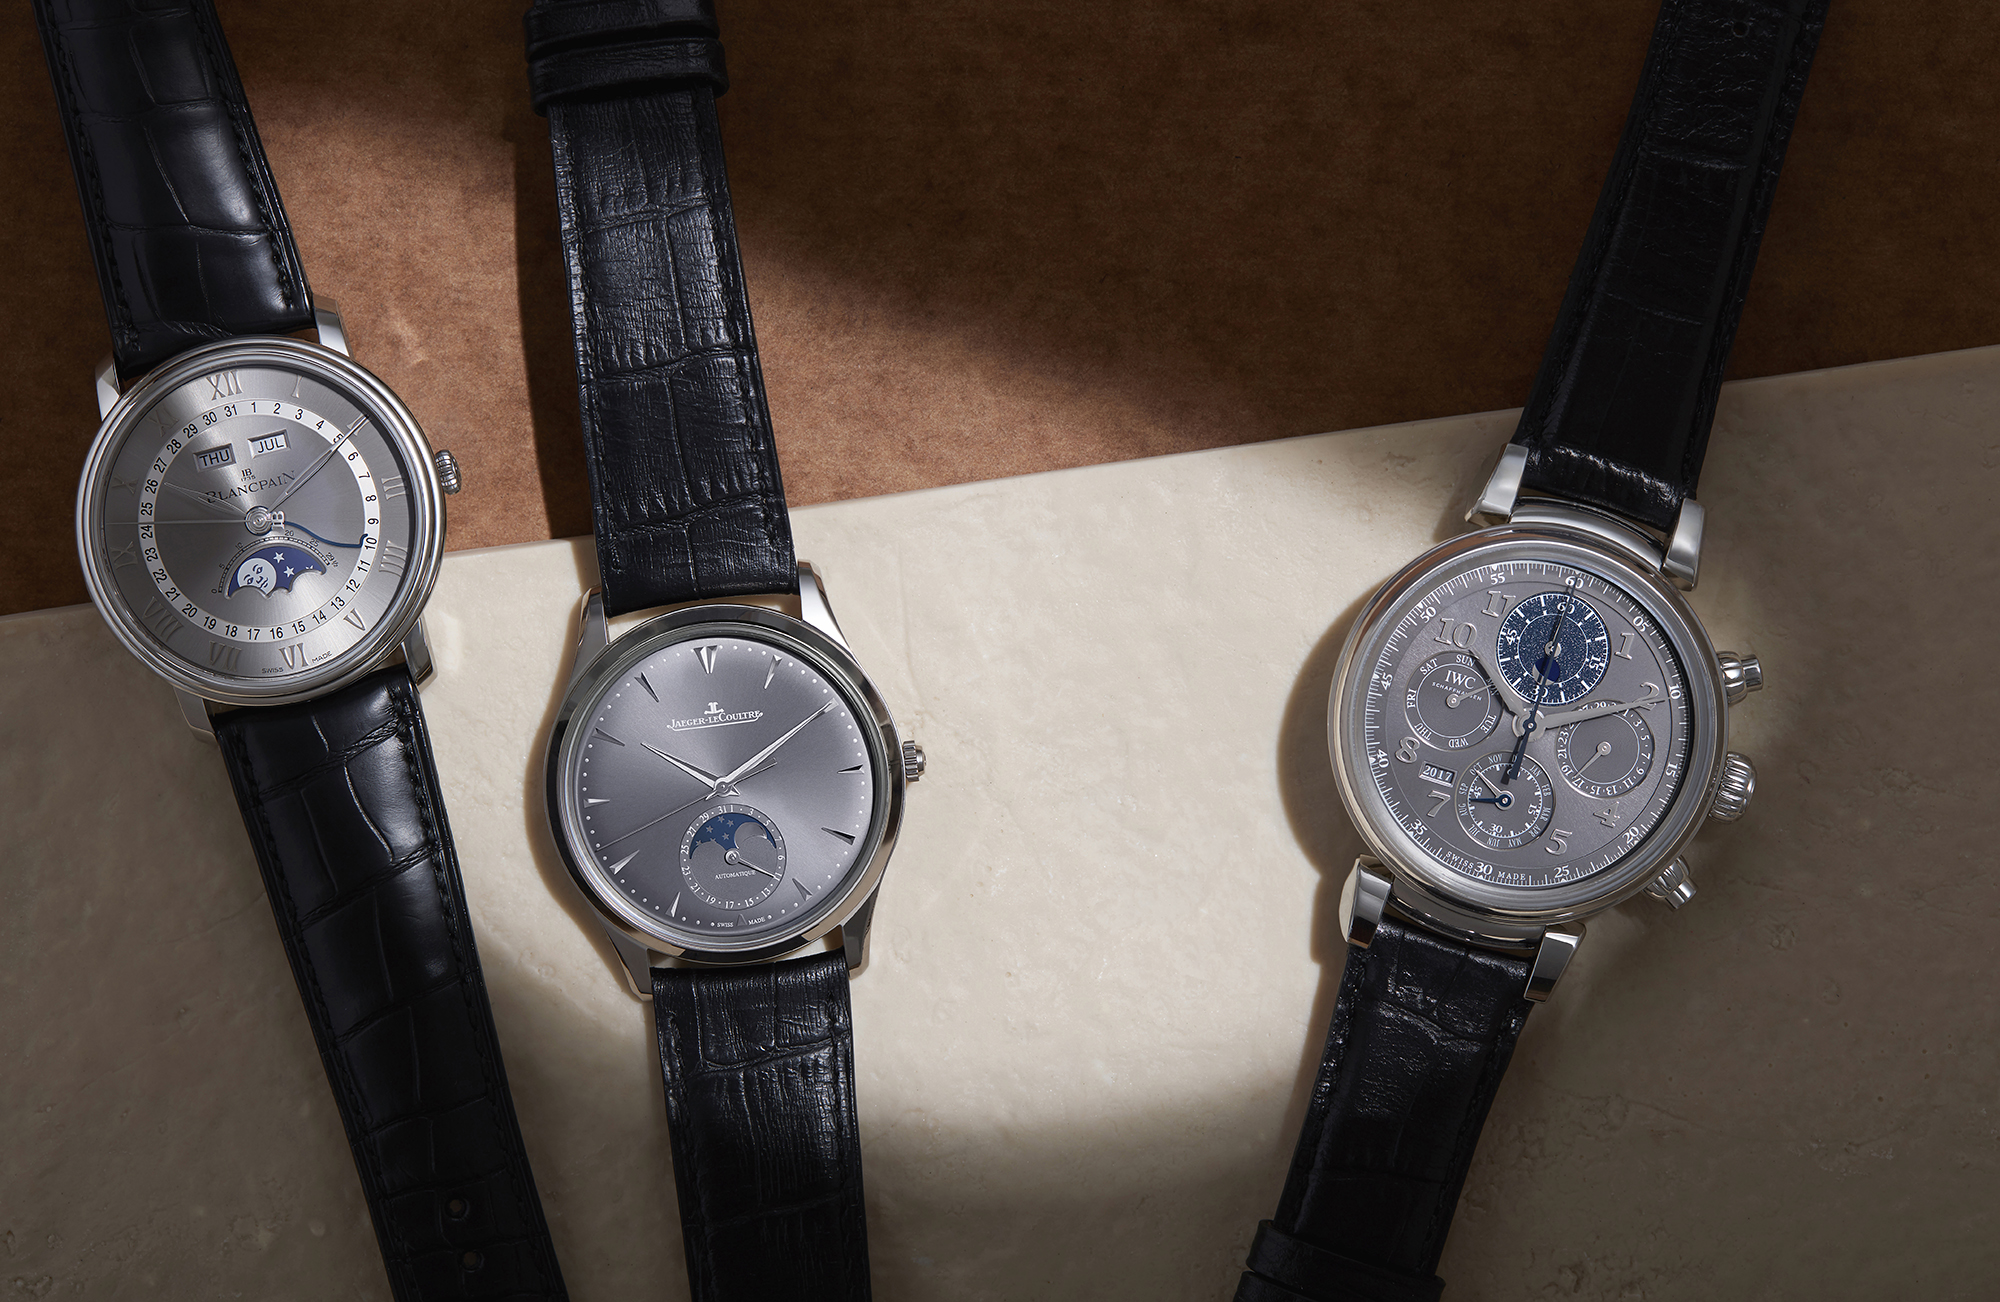 From left to right: Villeret Day Date Moonphase with grey dial, £10,930, BLANCPAIN; Master Ultra Thin Moon in white gold with selenite-grey dial on alligator leather strap, £16,300, JAEGER-LECOULTRE; Da Vinci Perpetual Calendar Chronograph, £26,250, IWC